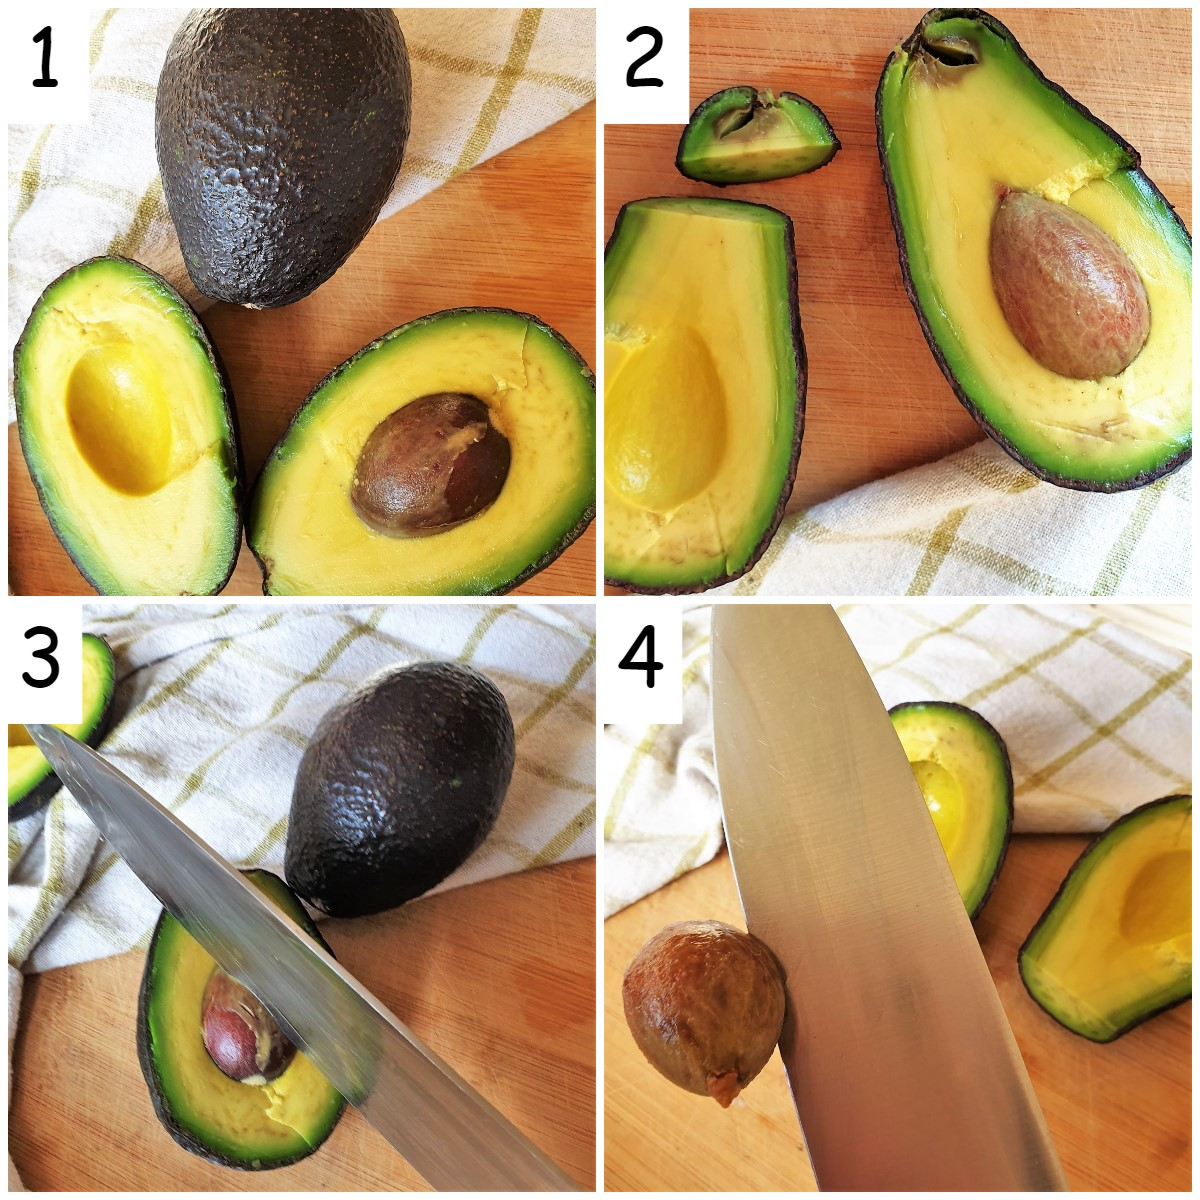 A collage of 4 images showing how to remove the pip from the avocado.